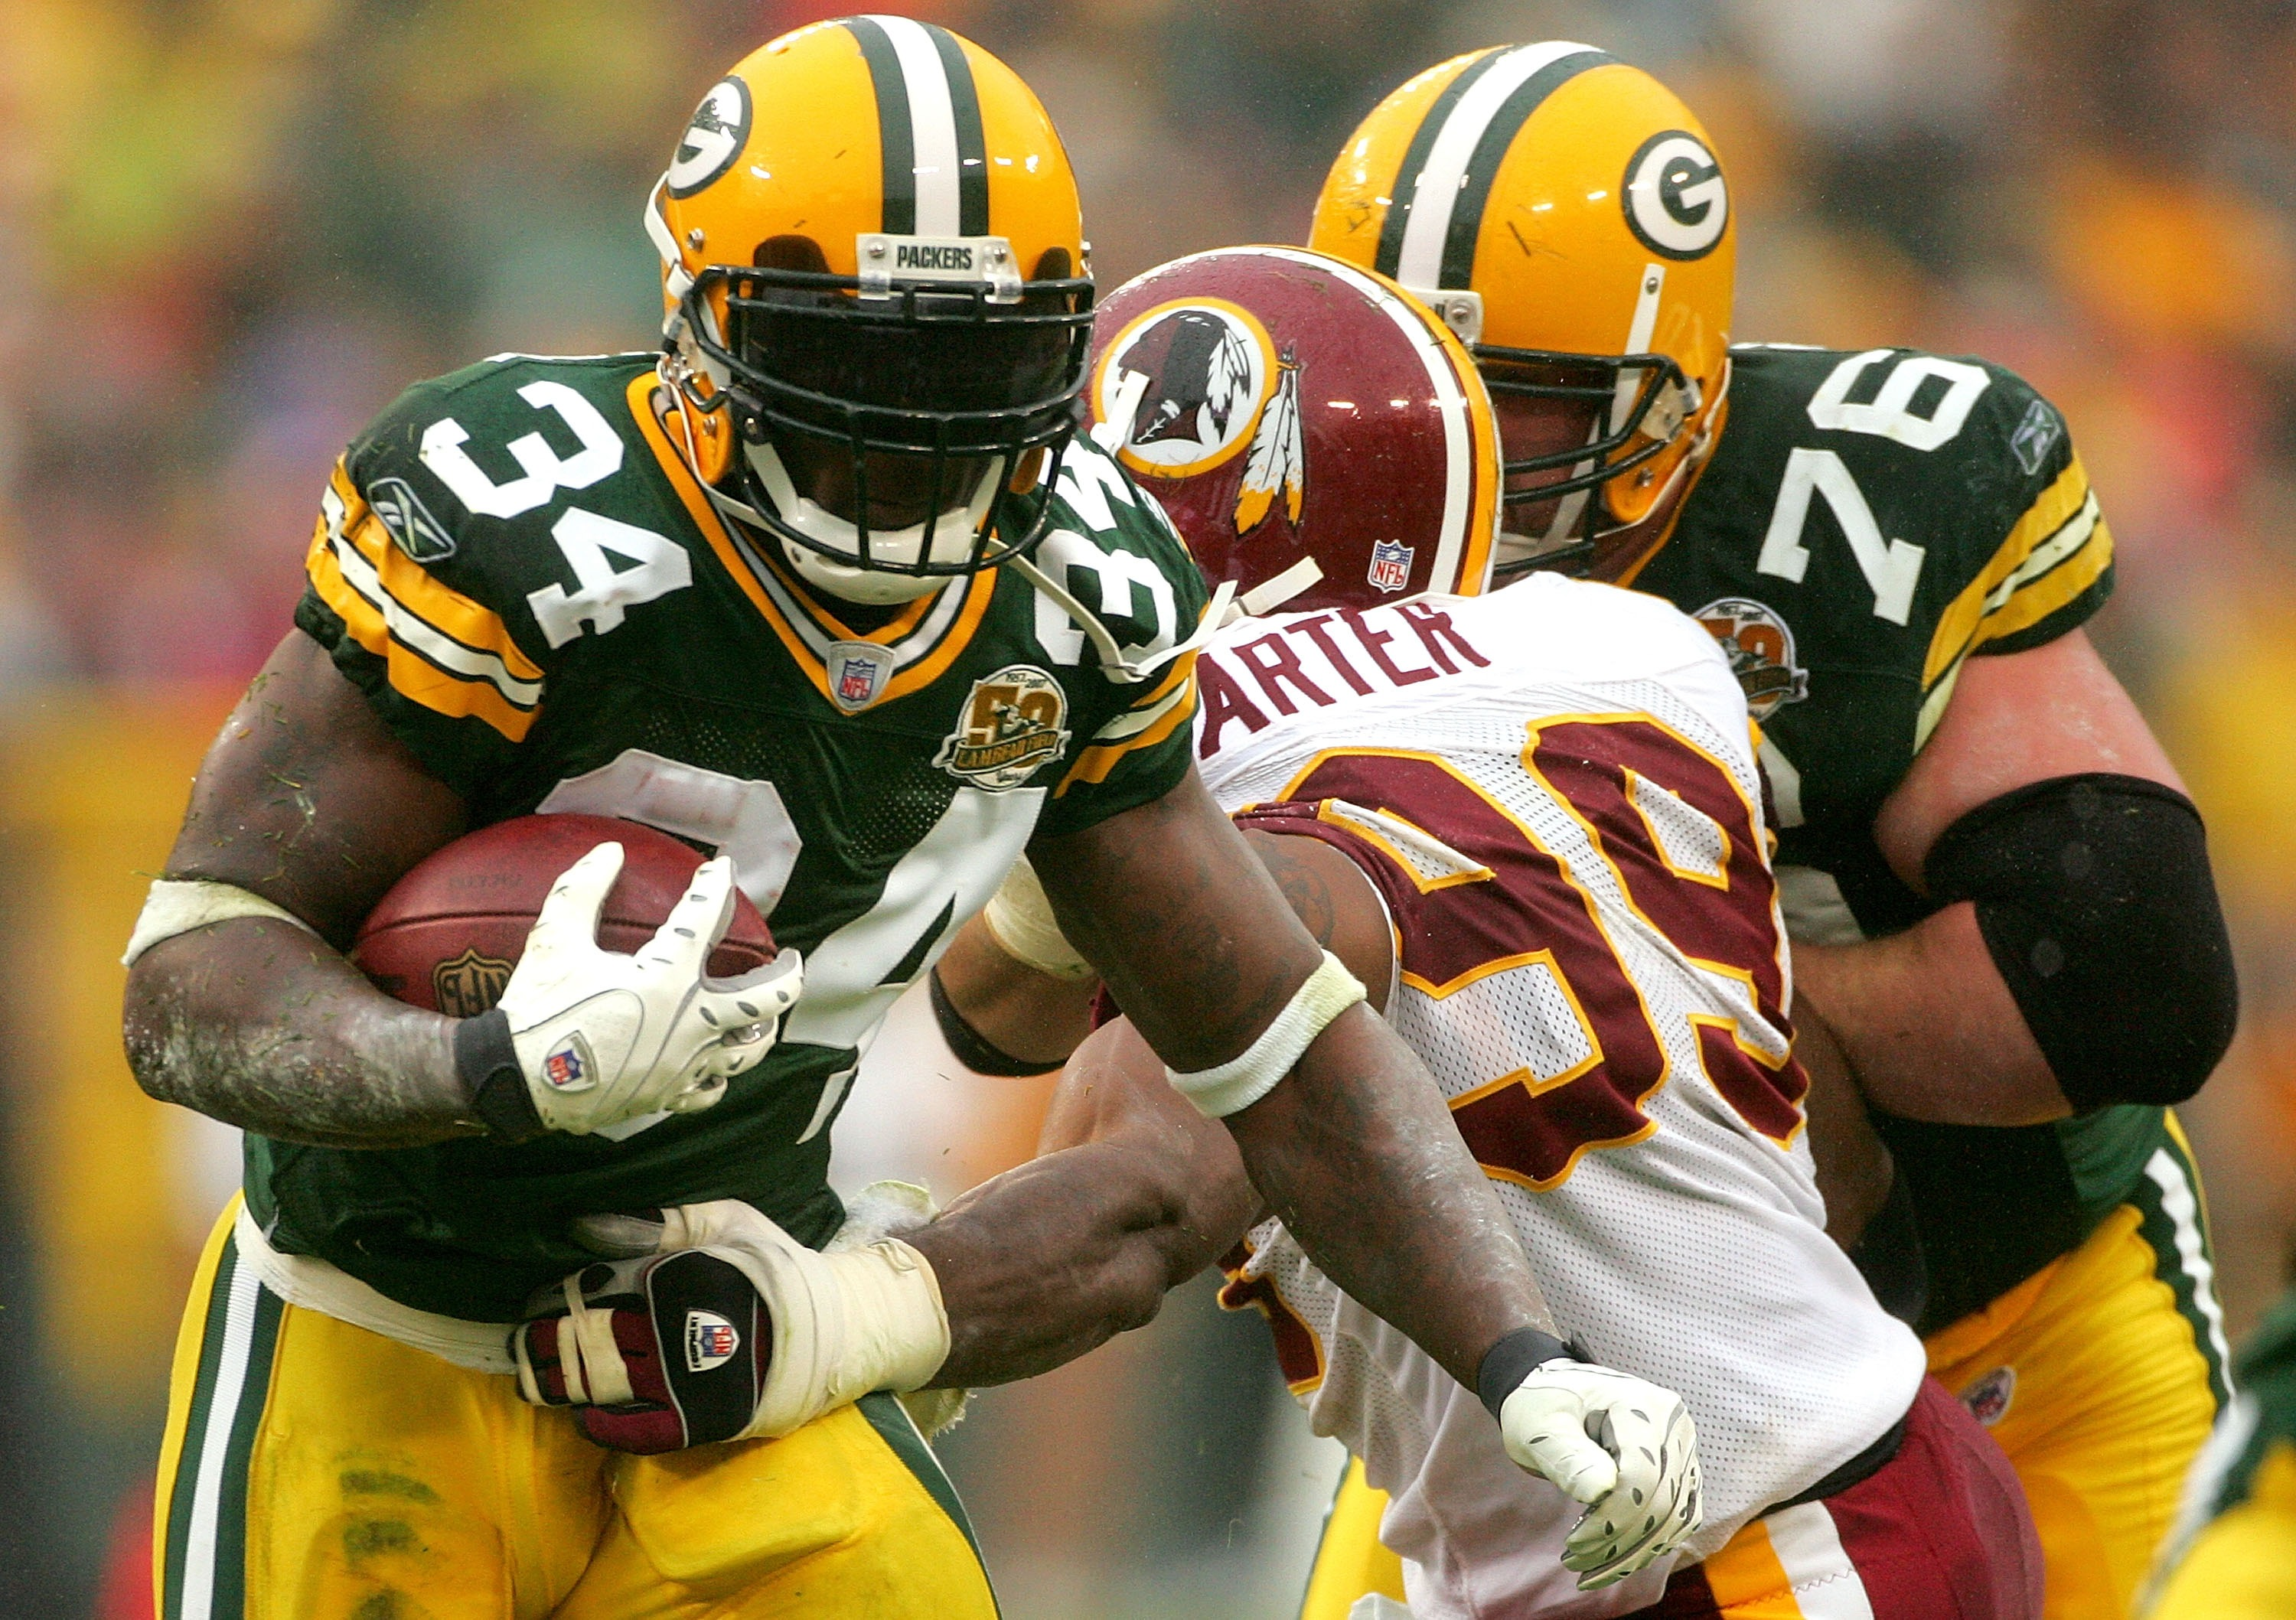 GREEN BAY, WI - OCTOBER 14:  Vernand Morency #34 of the Green Bay Packers tries to break free from Andre Carter #99 of the Washington Redskins October 14, 2007 at Lambeau Field in Green Bay, Wisconsin.  (Photo by Matthew Stockman/Getty Images)